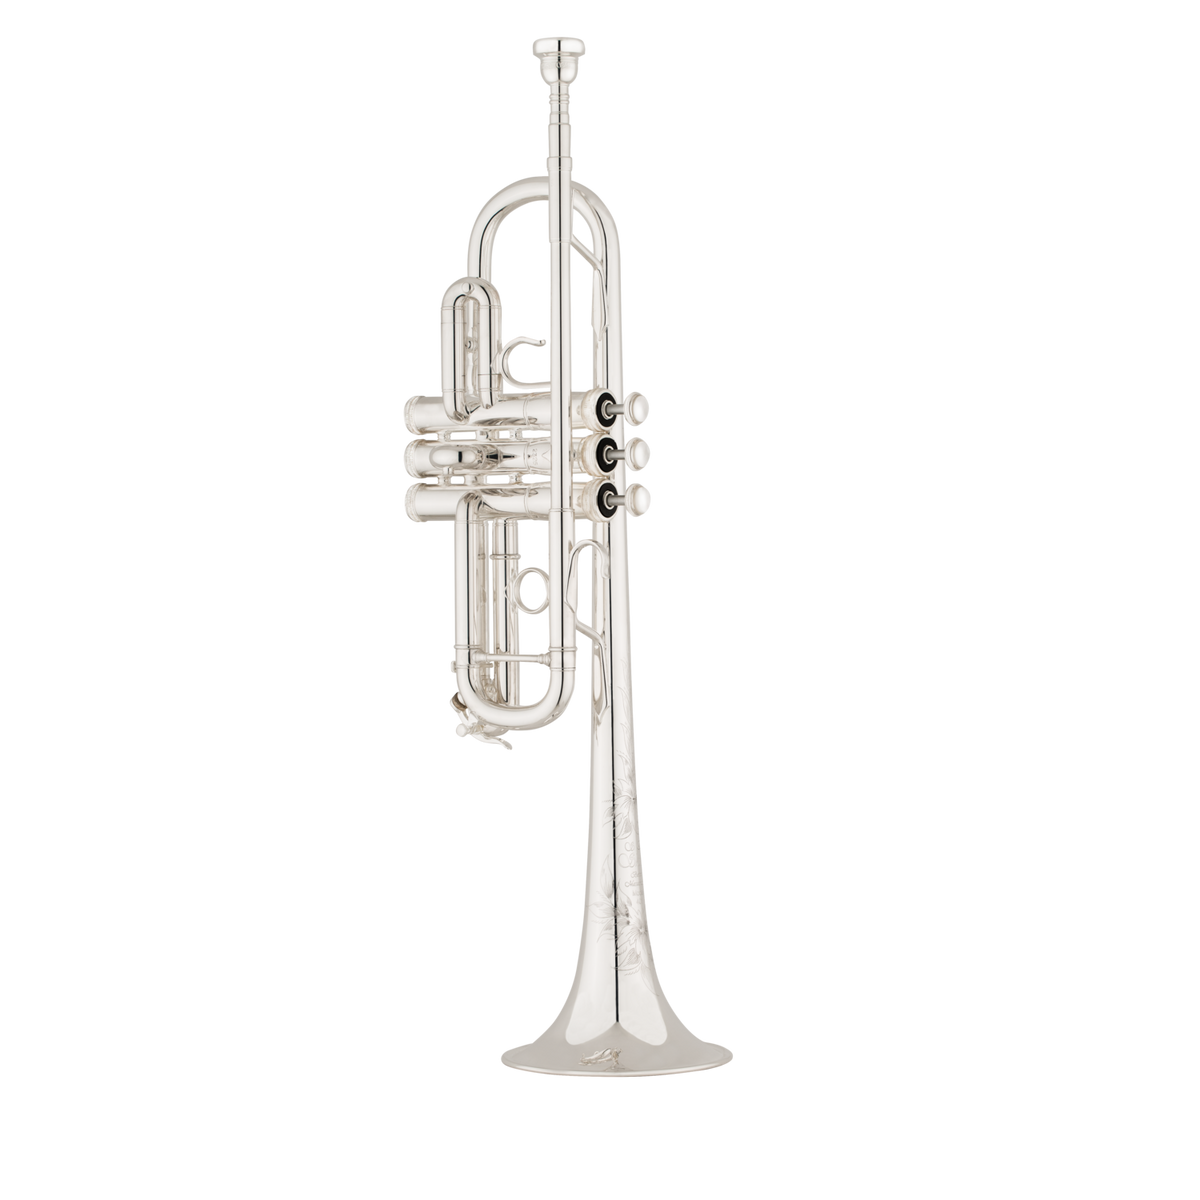 S.E. Shires - Model 4S8 - Custom C Trumpet-Trumpet-S.E. Shires-Music Elements